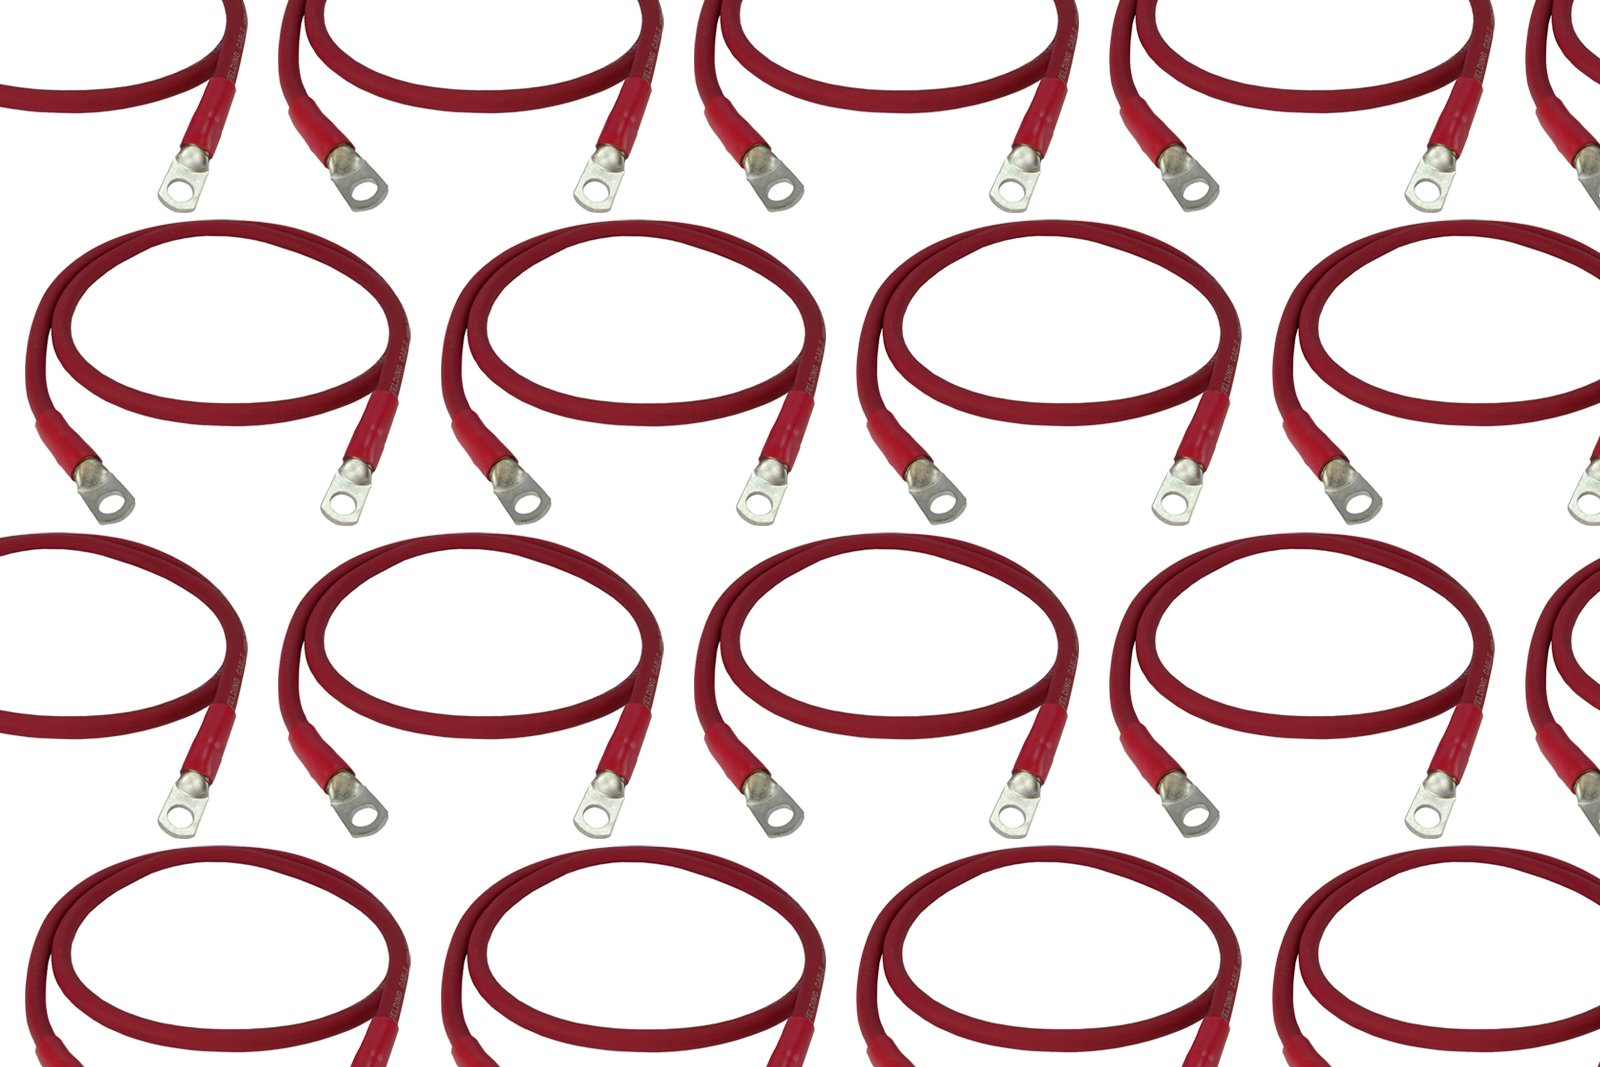 TEMCo 100 LOT 6 Gauge 36in - 1/4 in Hole Sizes Red Solar Battery Cables Power AWG Solar Inverter Golf Cart Car GLUE SEALED